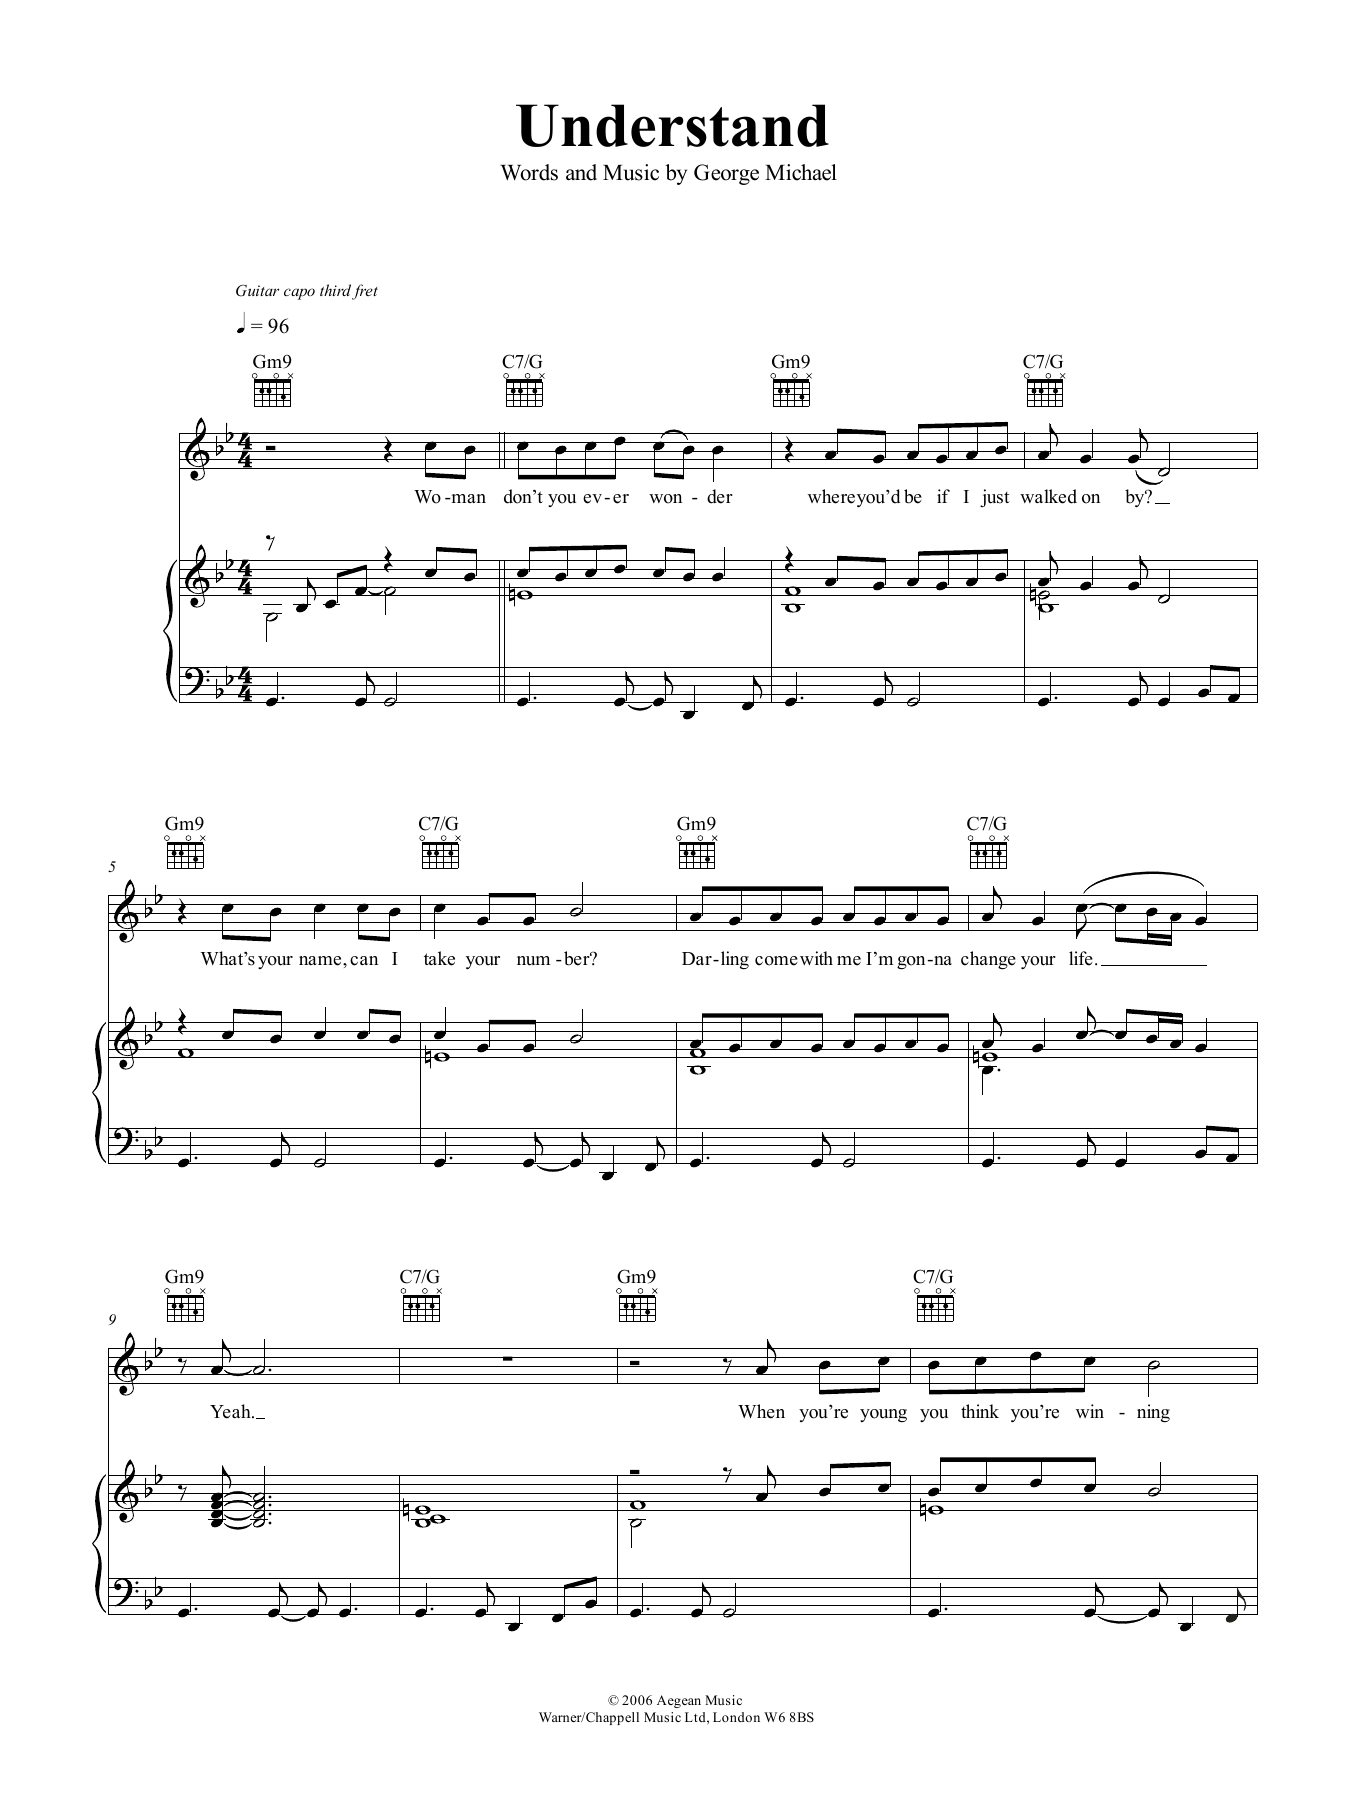 George Michael Understand sheet music notes and chords. Download Printable PDF.